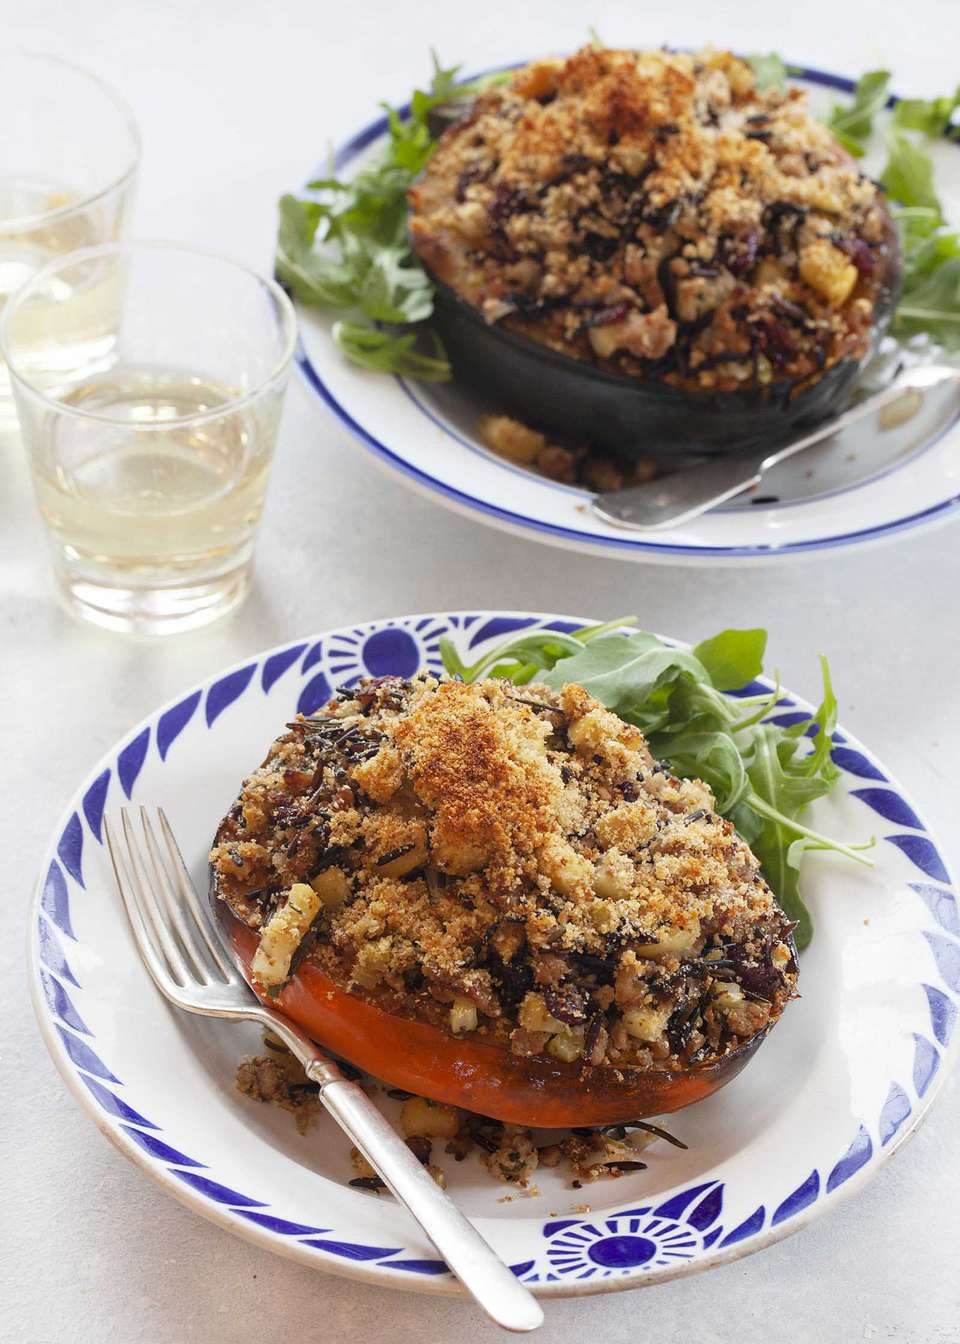 Easy Stuffed Squash: Acorn Squash on a plate stuffed with turkey sausage and rice. A glass is nearby filled with white wine.